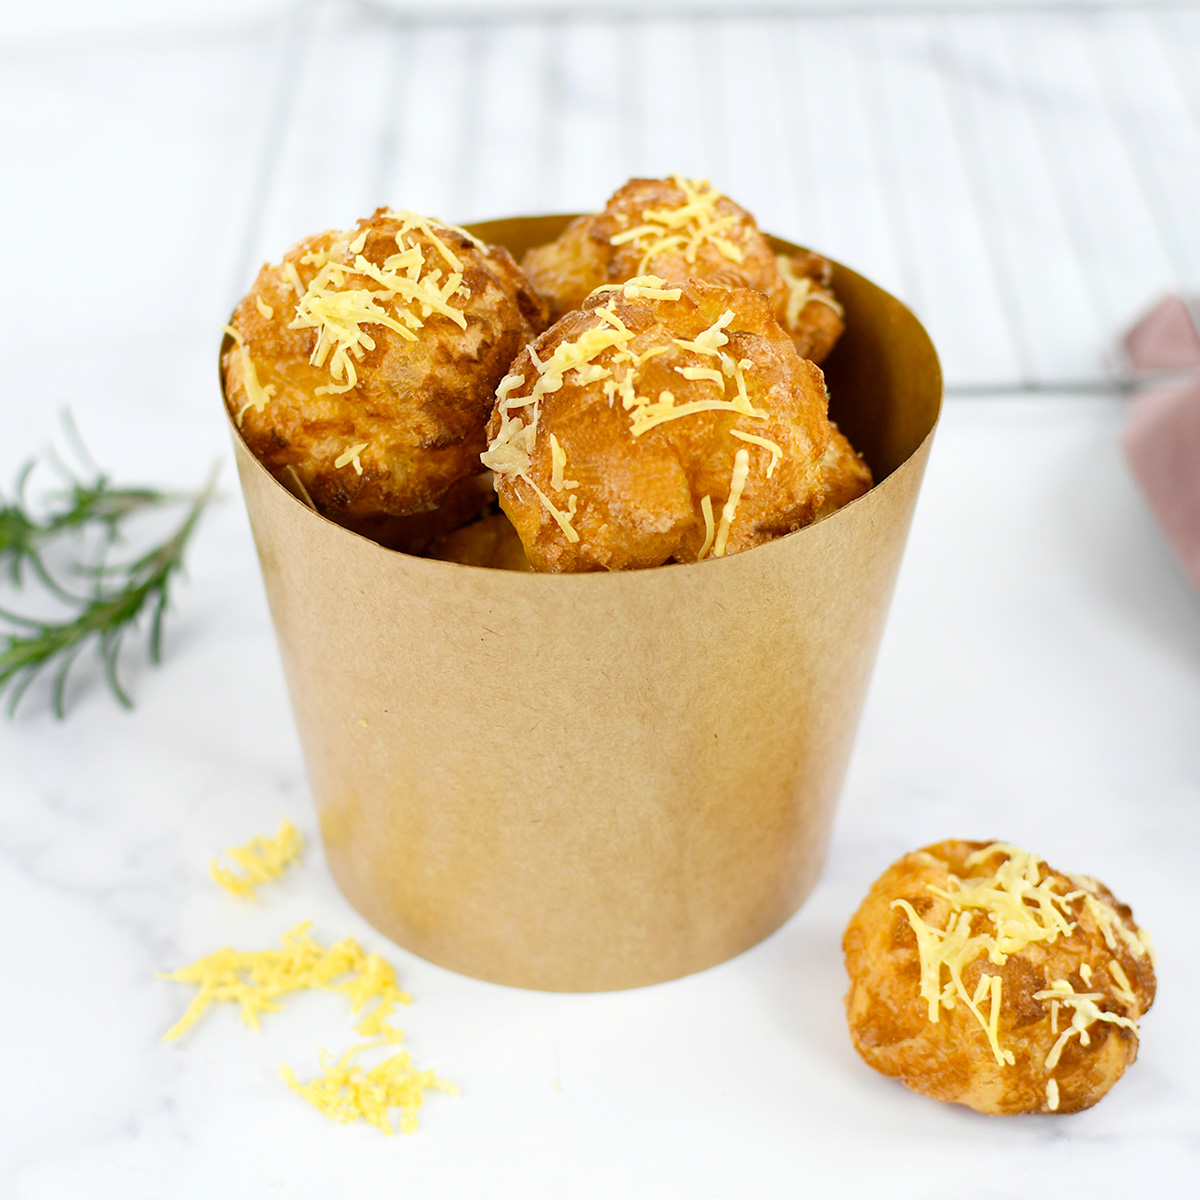 Quick and easy Gougeres recipe perfect for family time cooking!